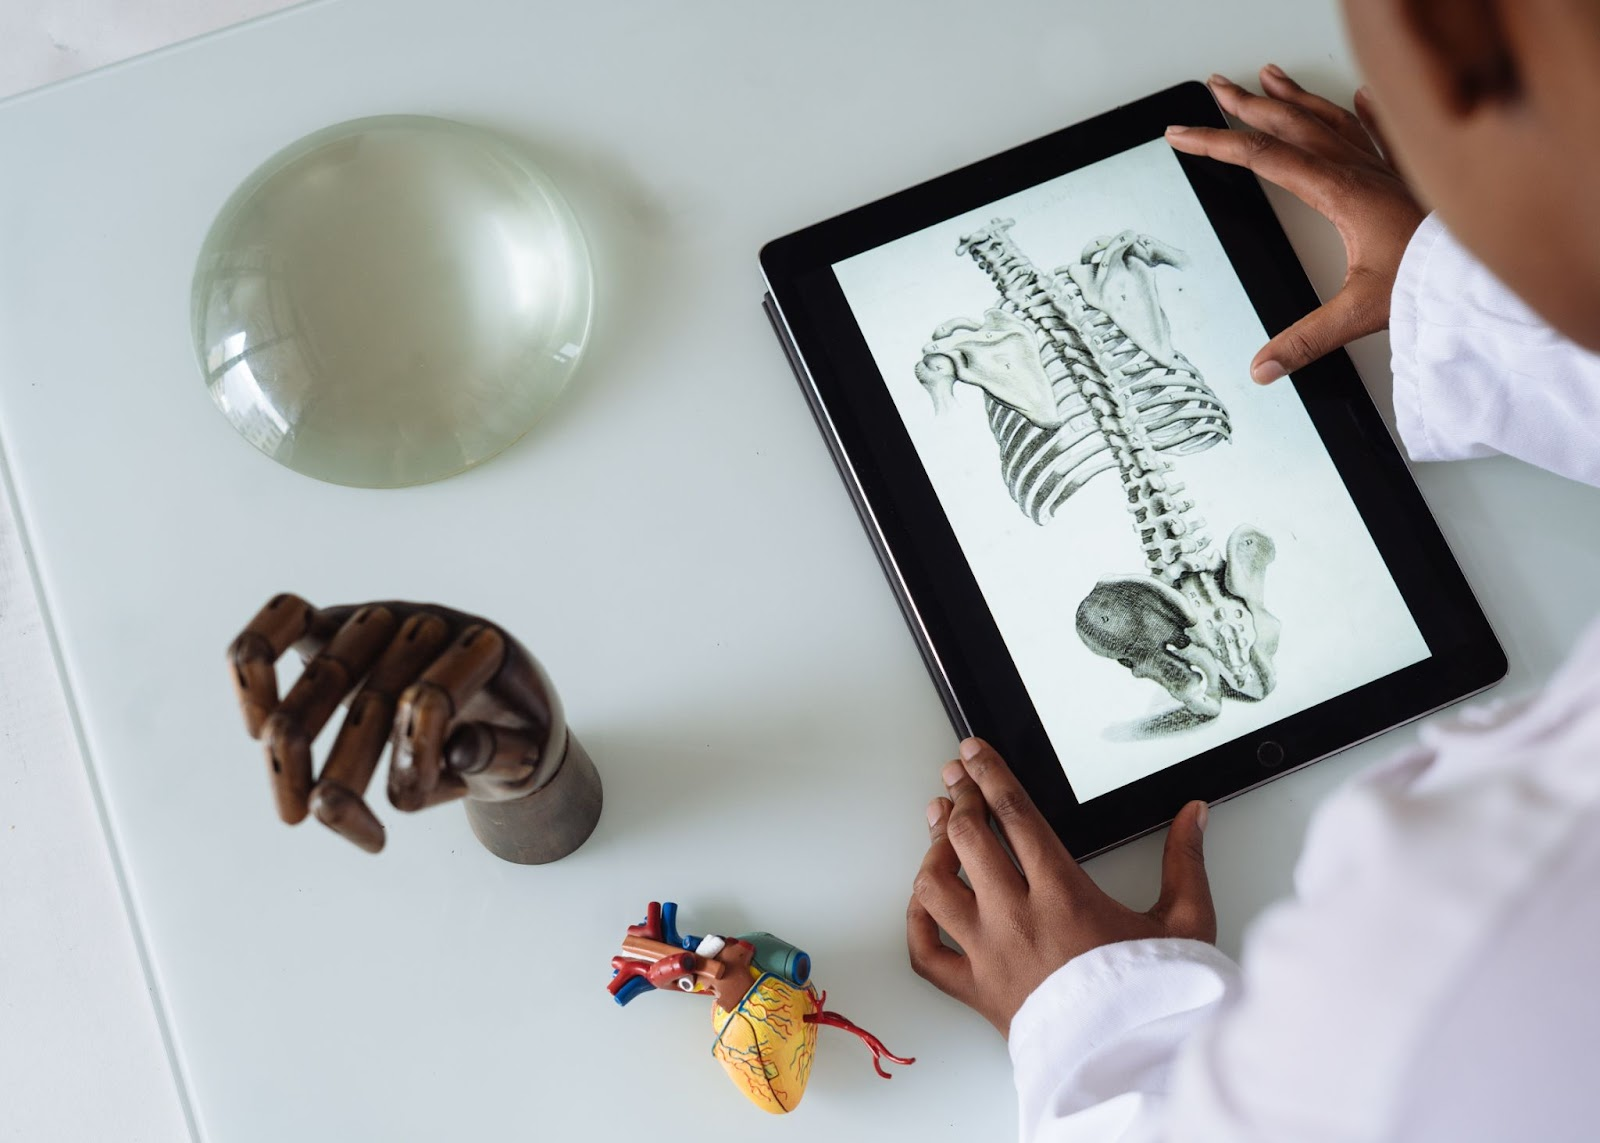 Man in white coat looking down at a screen with a skeleton on it, surrounded by various objects like a wooden hand and model of a heart.